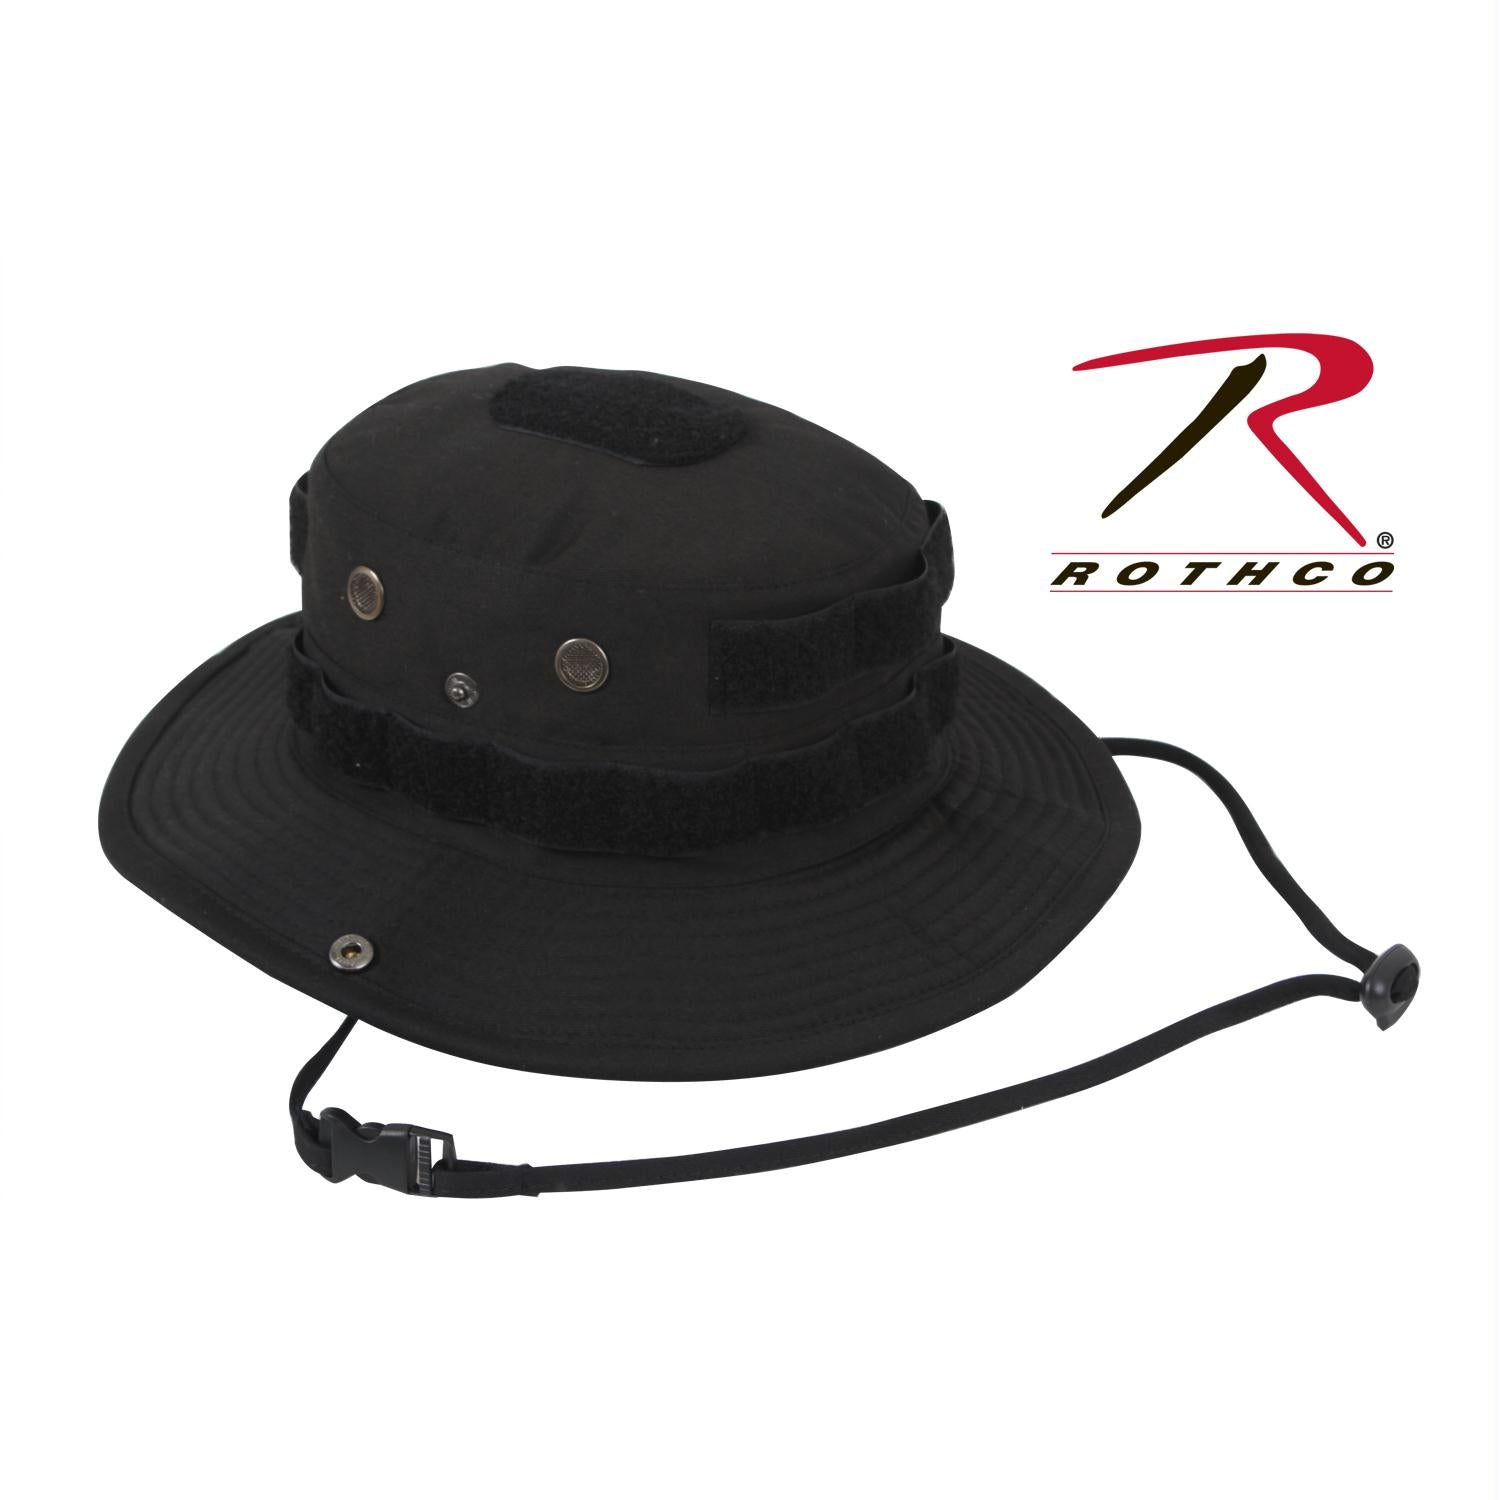 Rothco Tactical Boonie Hat - Black / 7 1/4